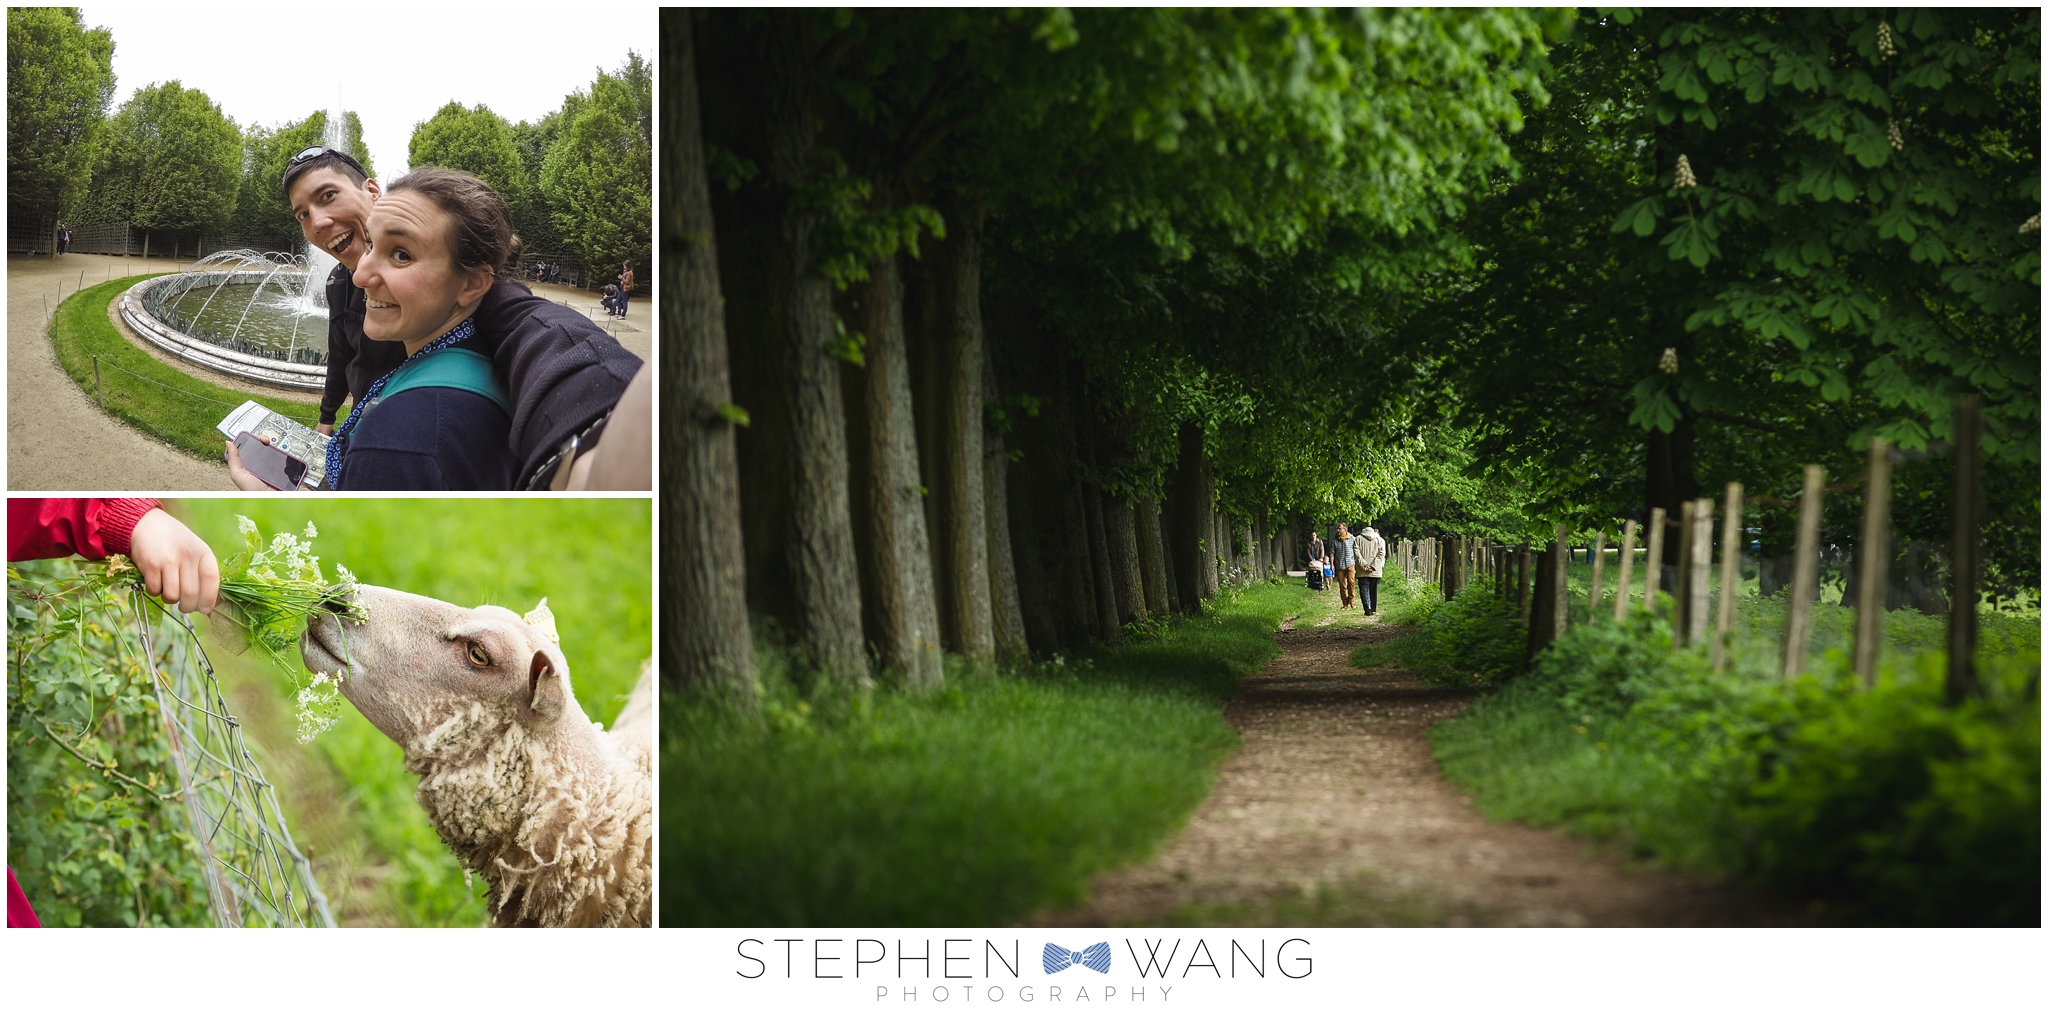 In the gardens of Versailles.  A cute walking path with sheep right next to us, and a perfect tree canopy made wandering around a joy.